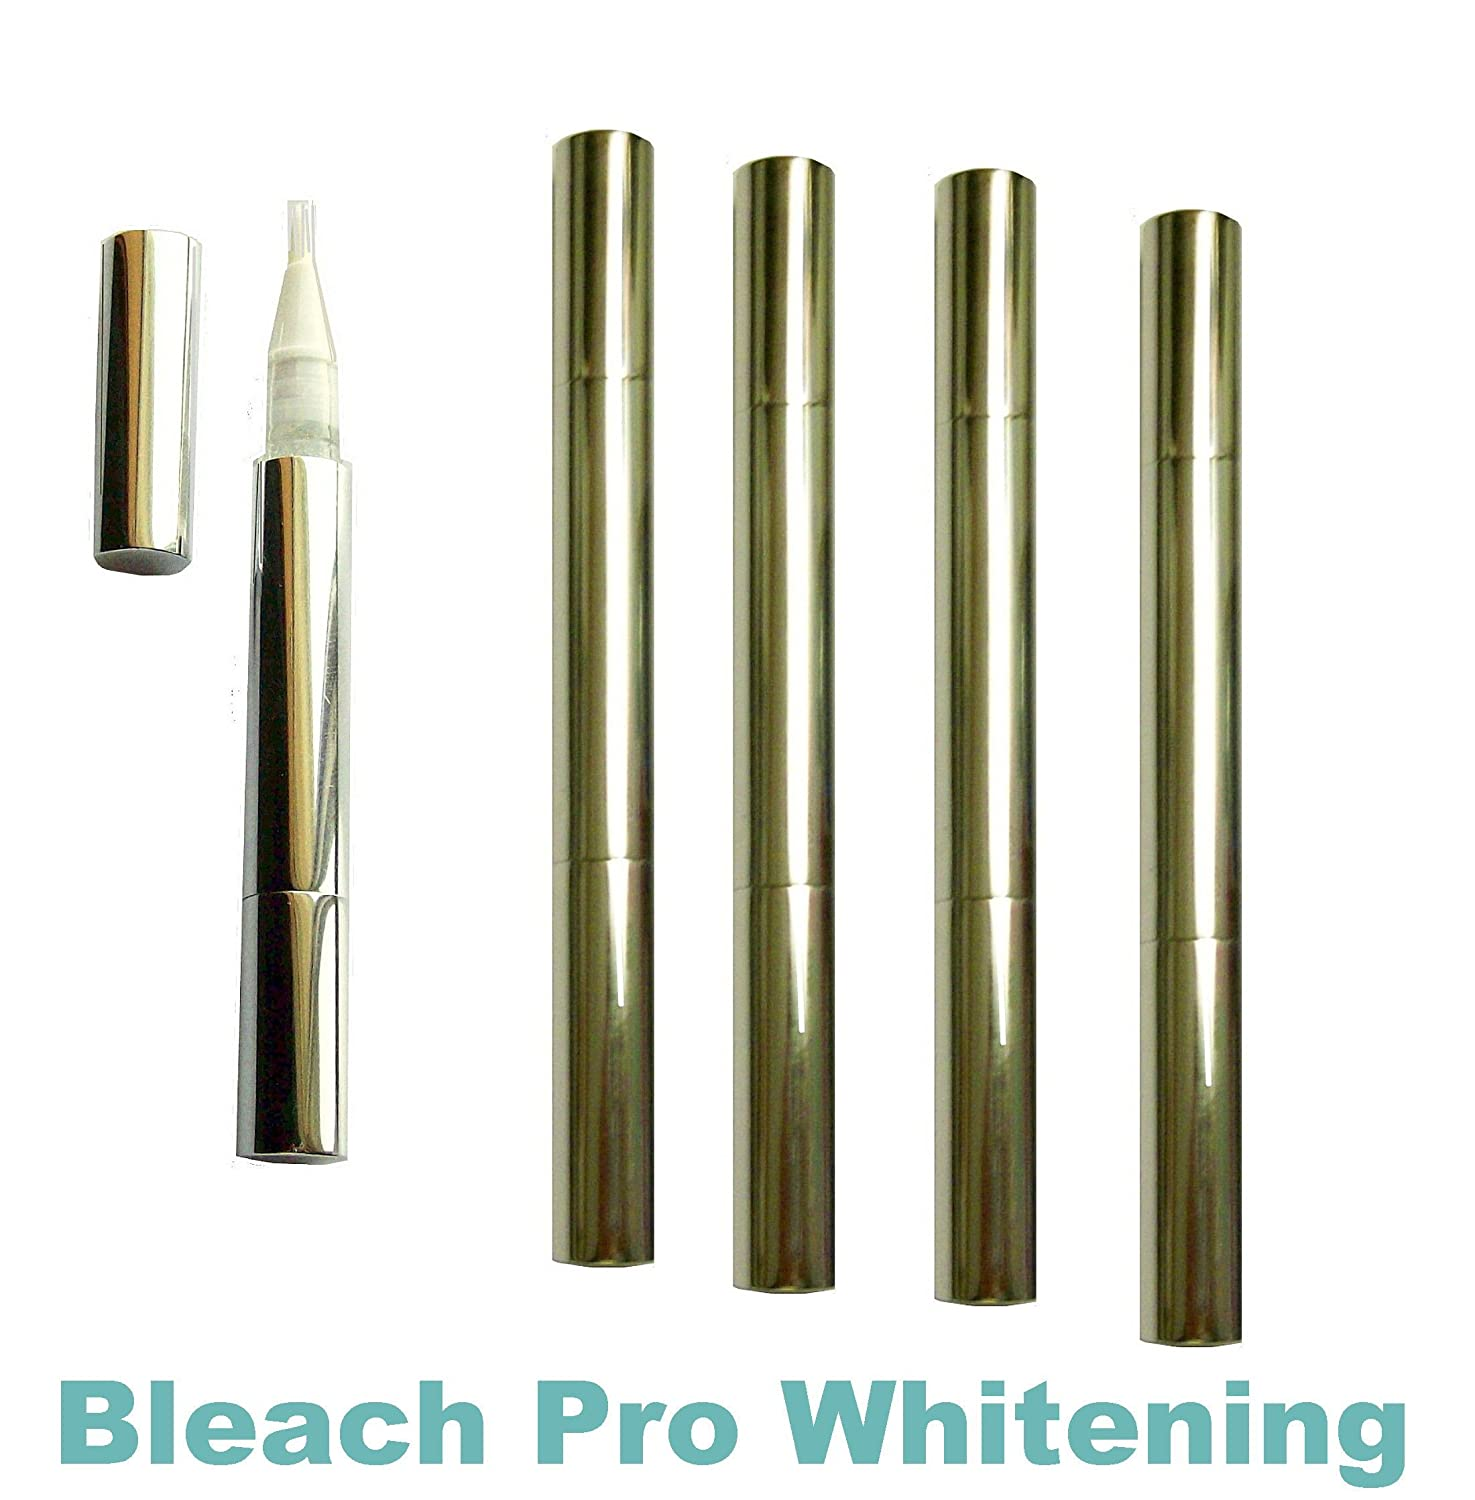 にぎやか珍味機関Teeth Whitening Gel Pens 35% Carbamide Peroxide Tooth Bleaching Formula Pen with Brush Tip Gel Dispenser. 5 Whitening Pens. by Bleach Pro Whitening